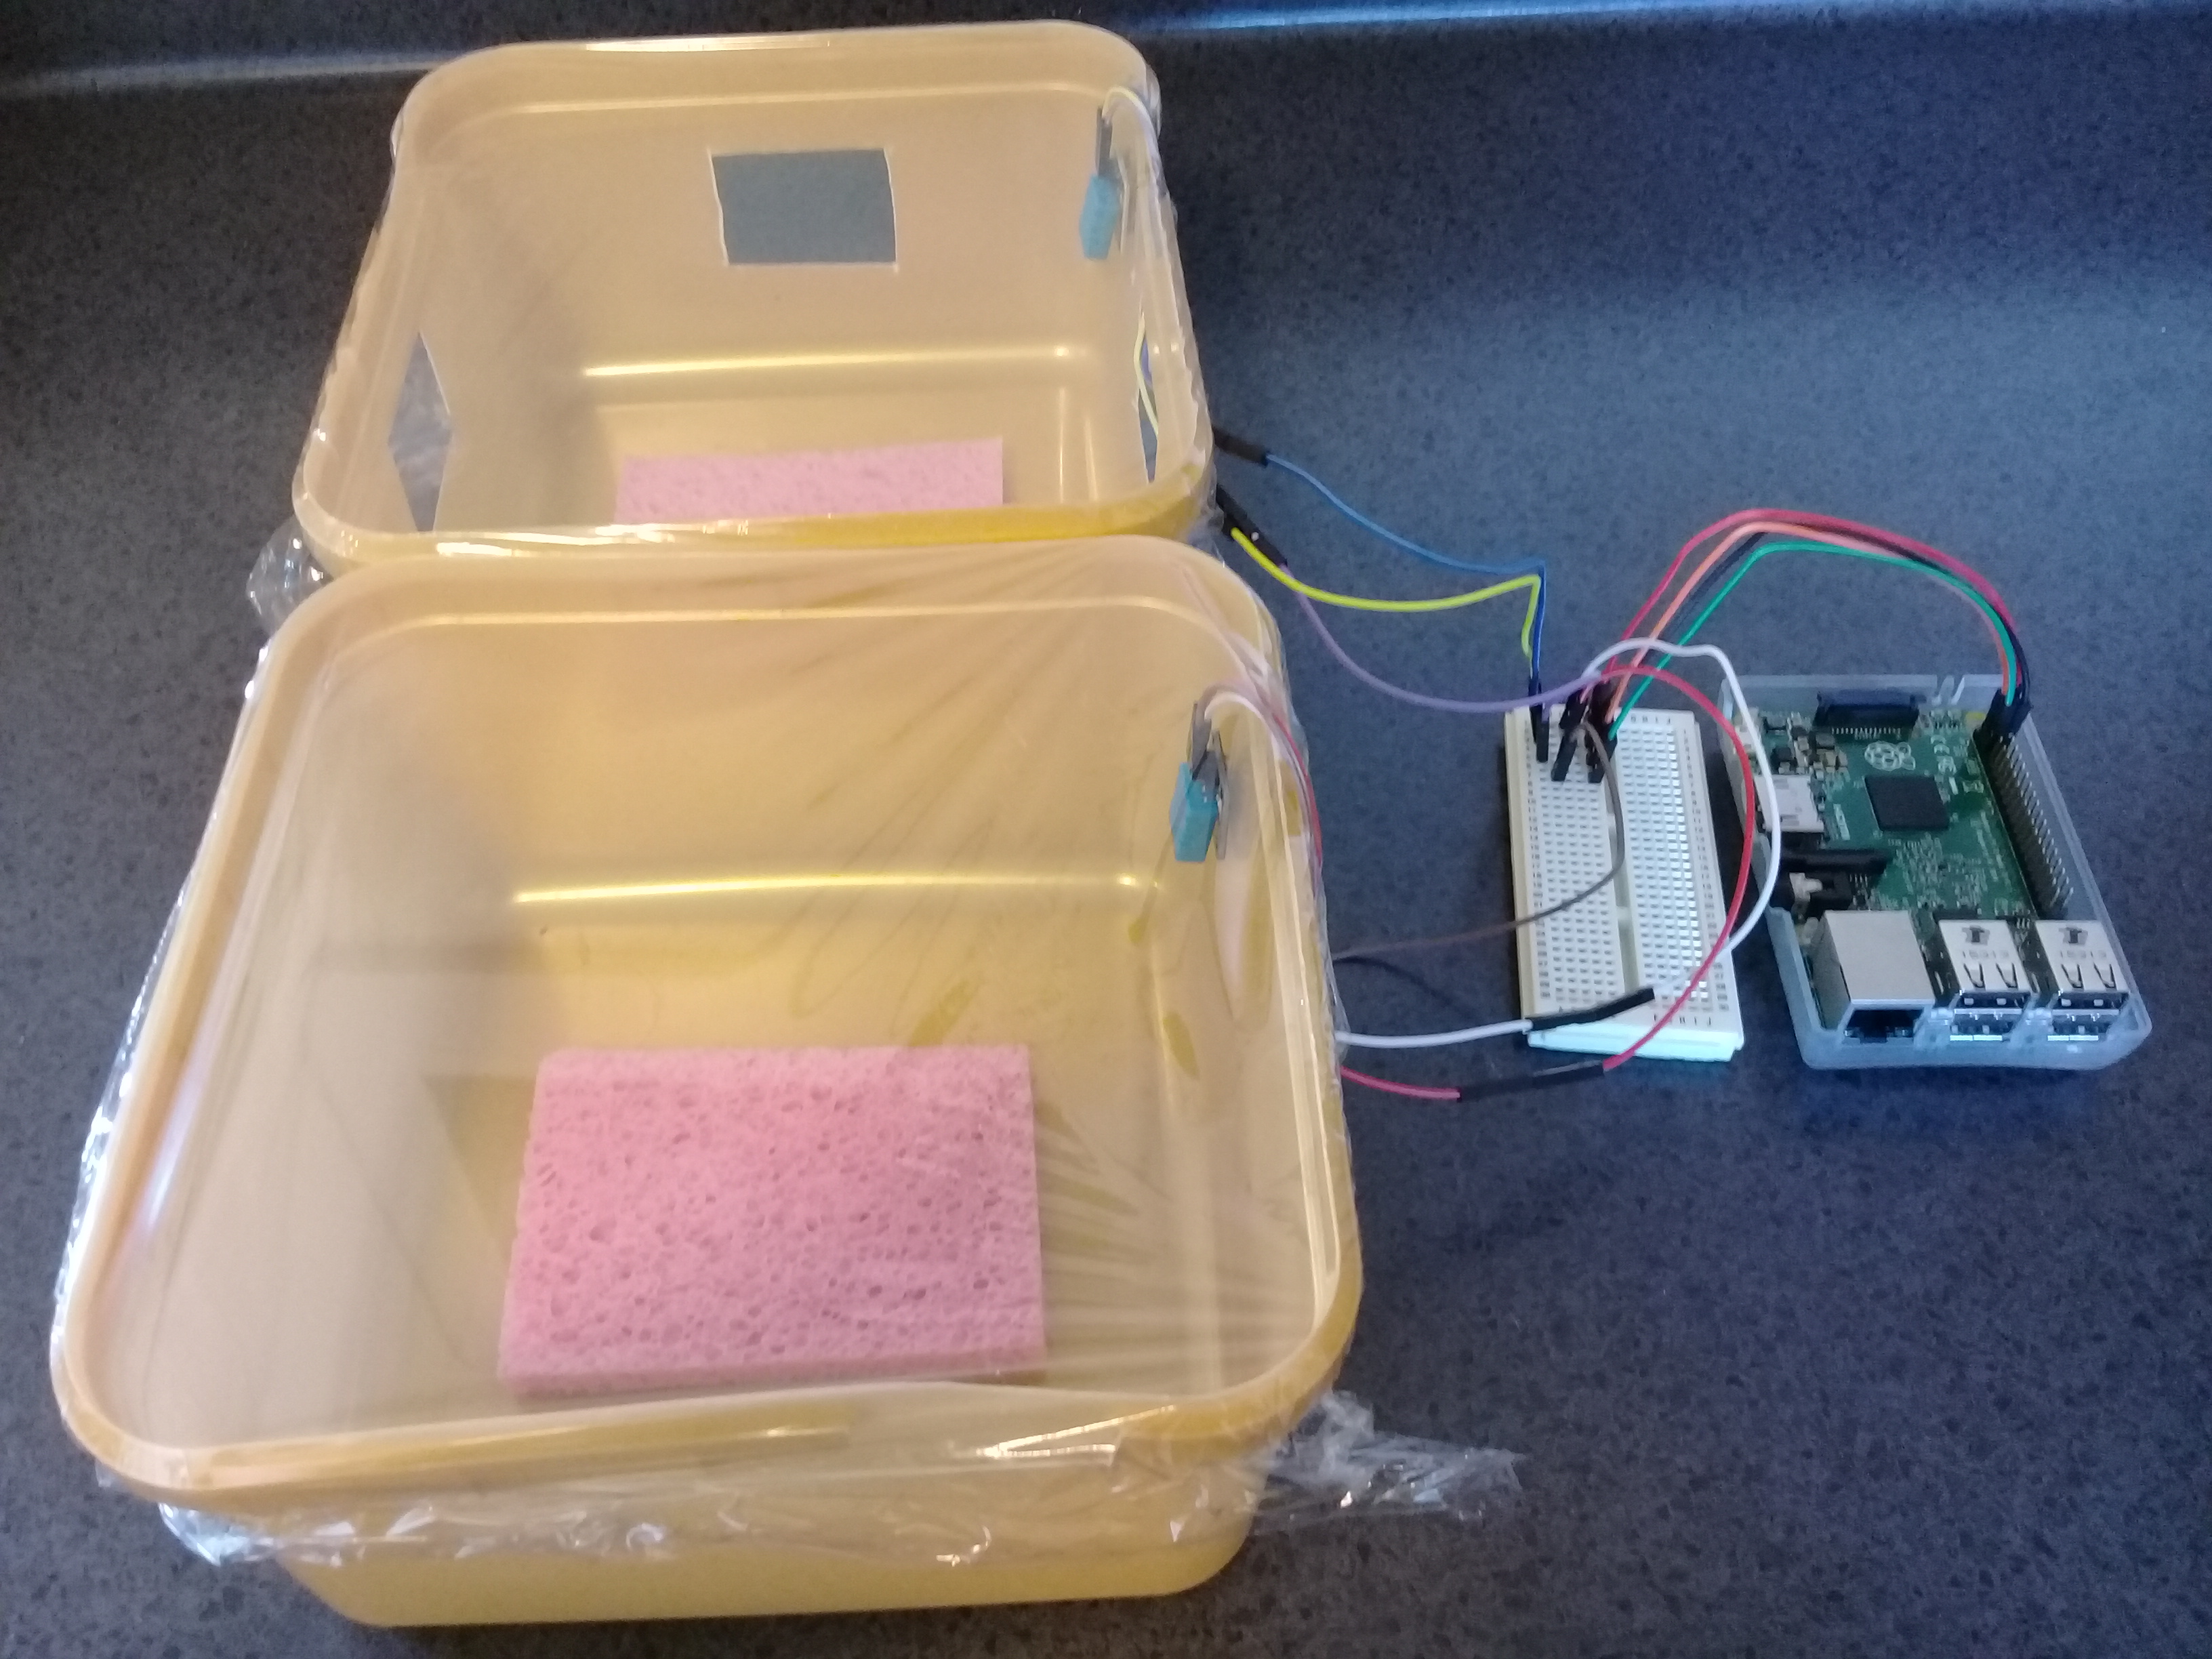 Measuring Humidity And Temperature With A Raspberry Pi